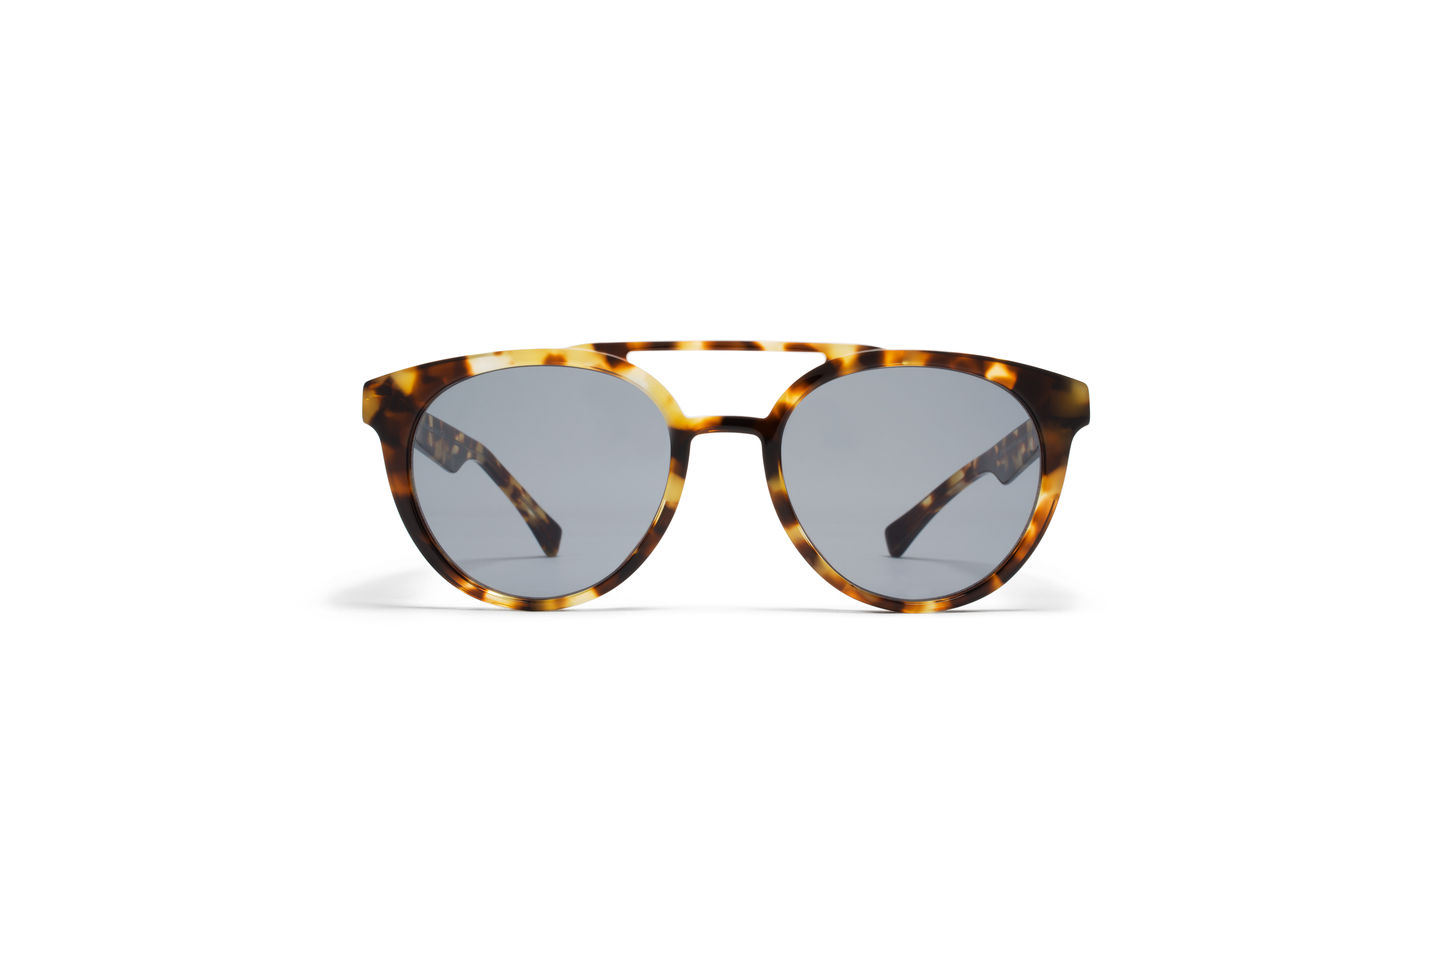 MYKITA acetate sunglasses GILES in MYKITA JOURNAL's Tropical Edit